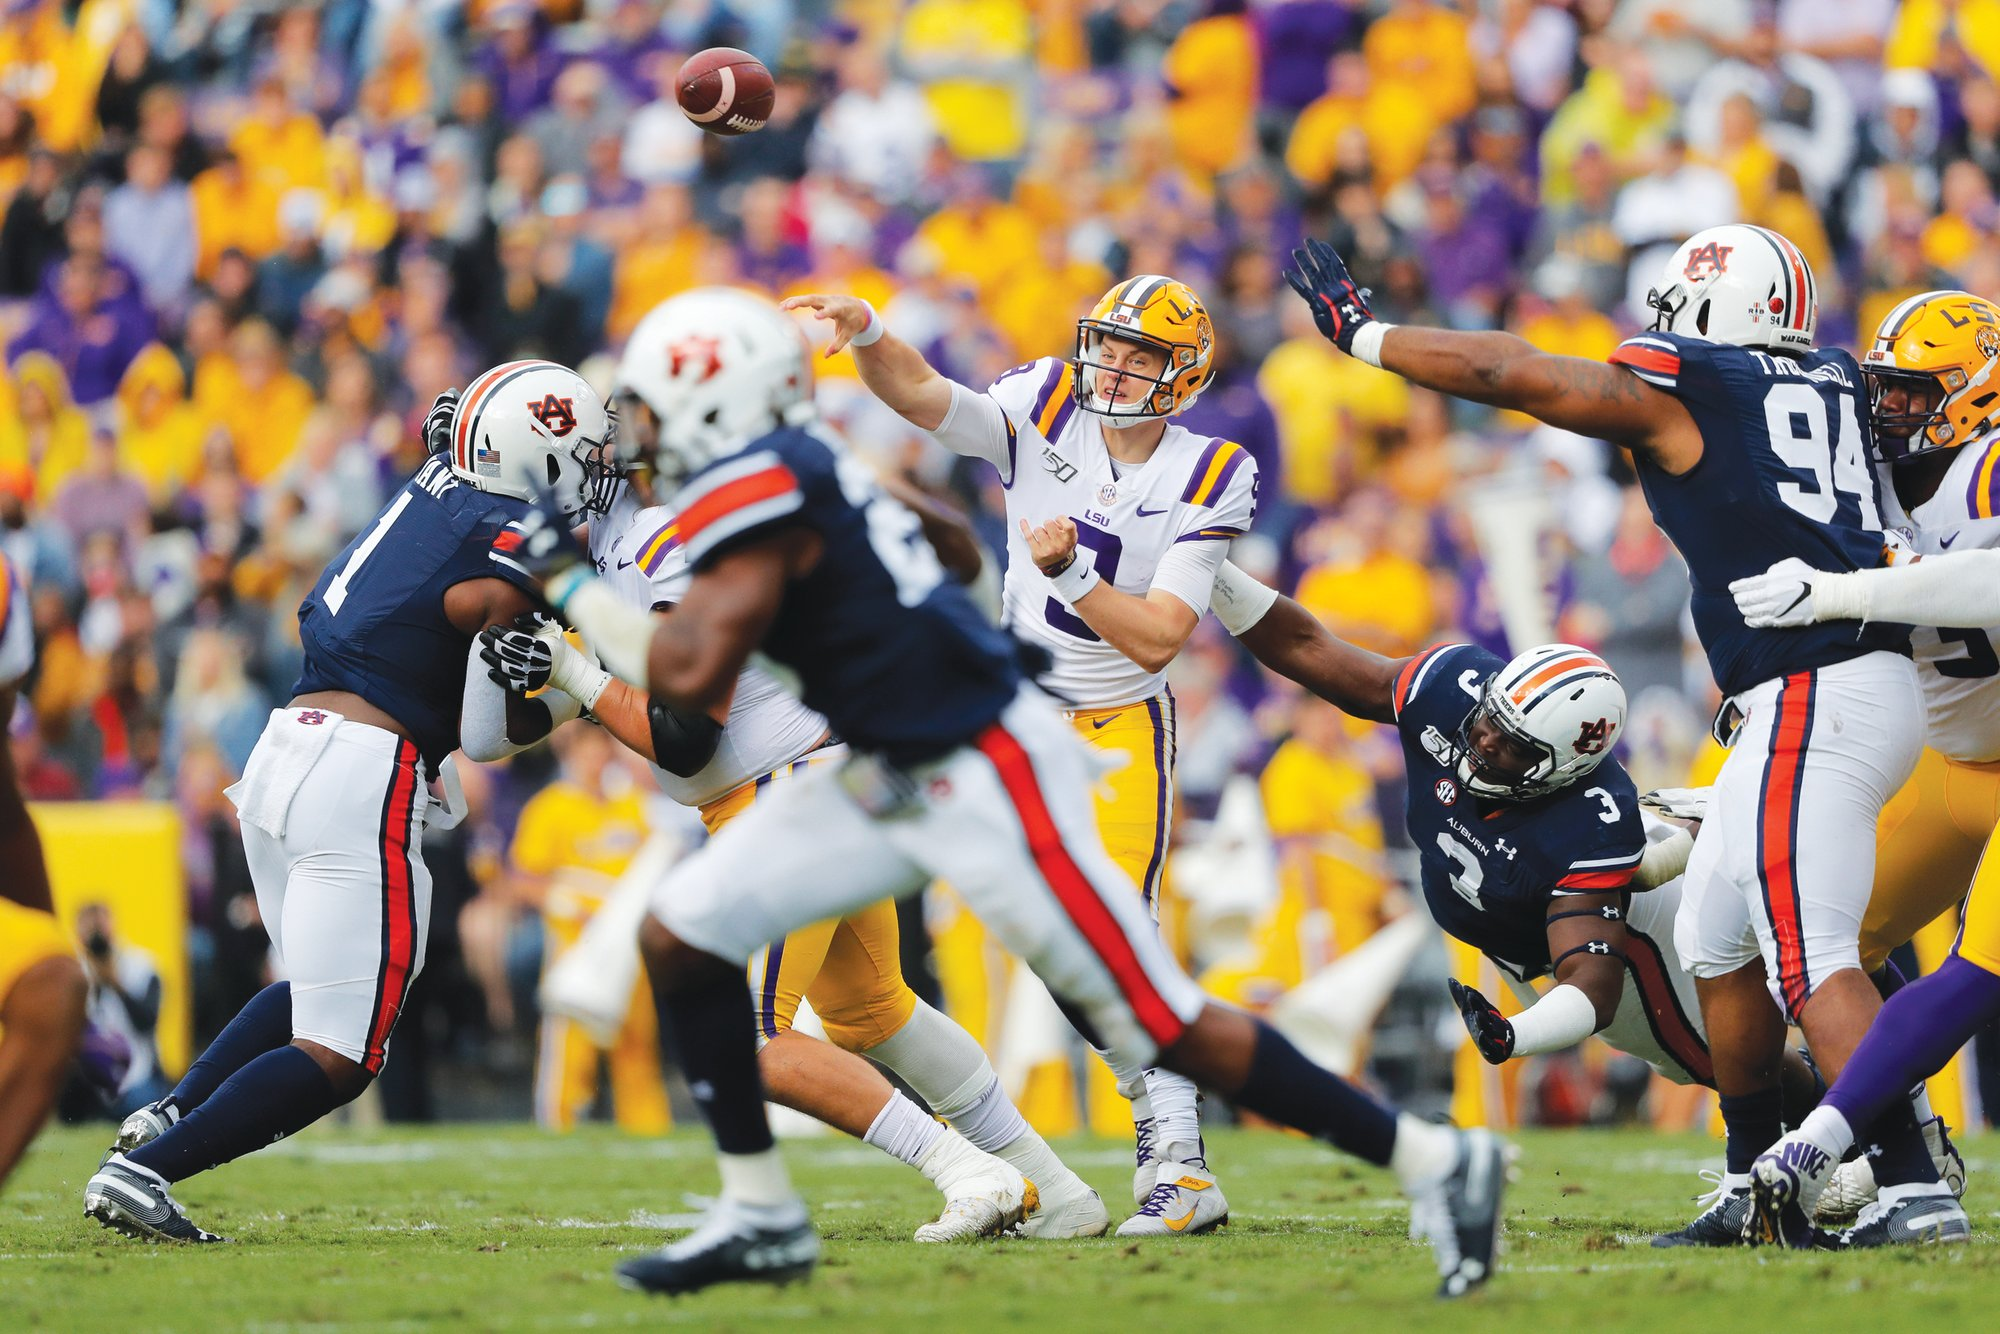 LSU quarterback Joe Burrow (9) passes under pressure from Auburn  defensive end Marlon Davidson (3) during the now top-ranked Tigers'  23-20 victory in Baton Rouge, La. on Saturday.